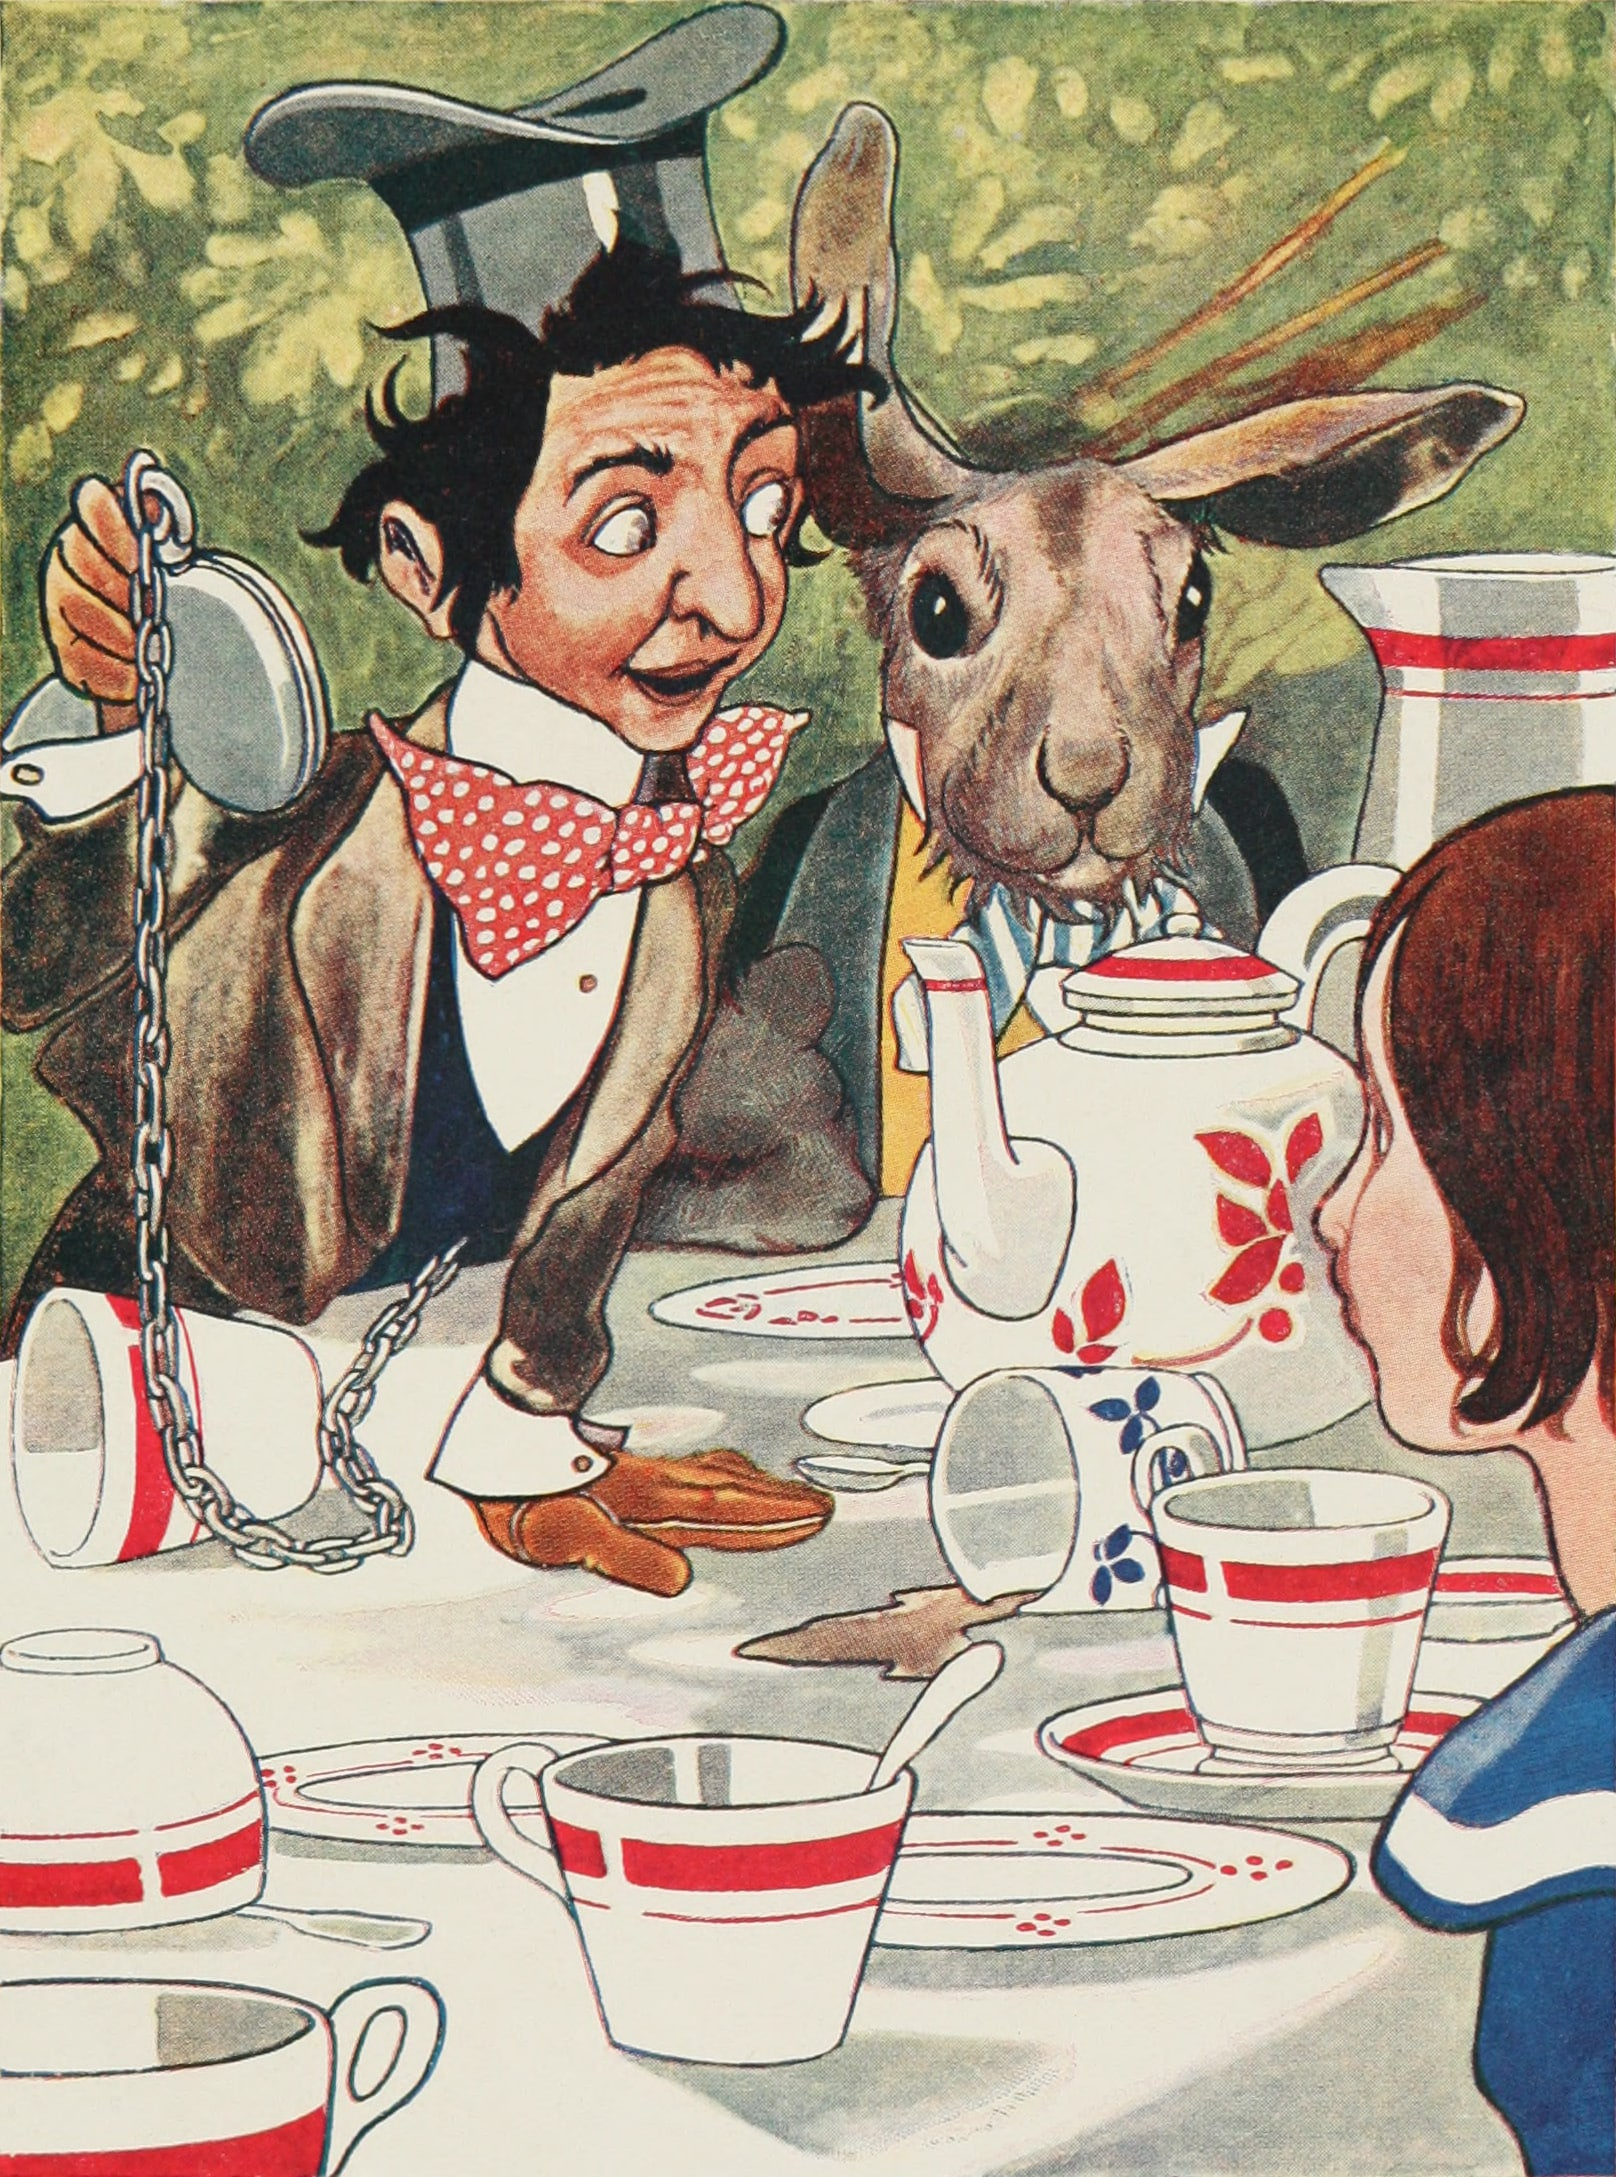 alices_adventures_in_wonderland_-_carroll_robinson_-_s119_-_what_day_of_the_month_is_it_he_said_turning_to_alice